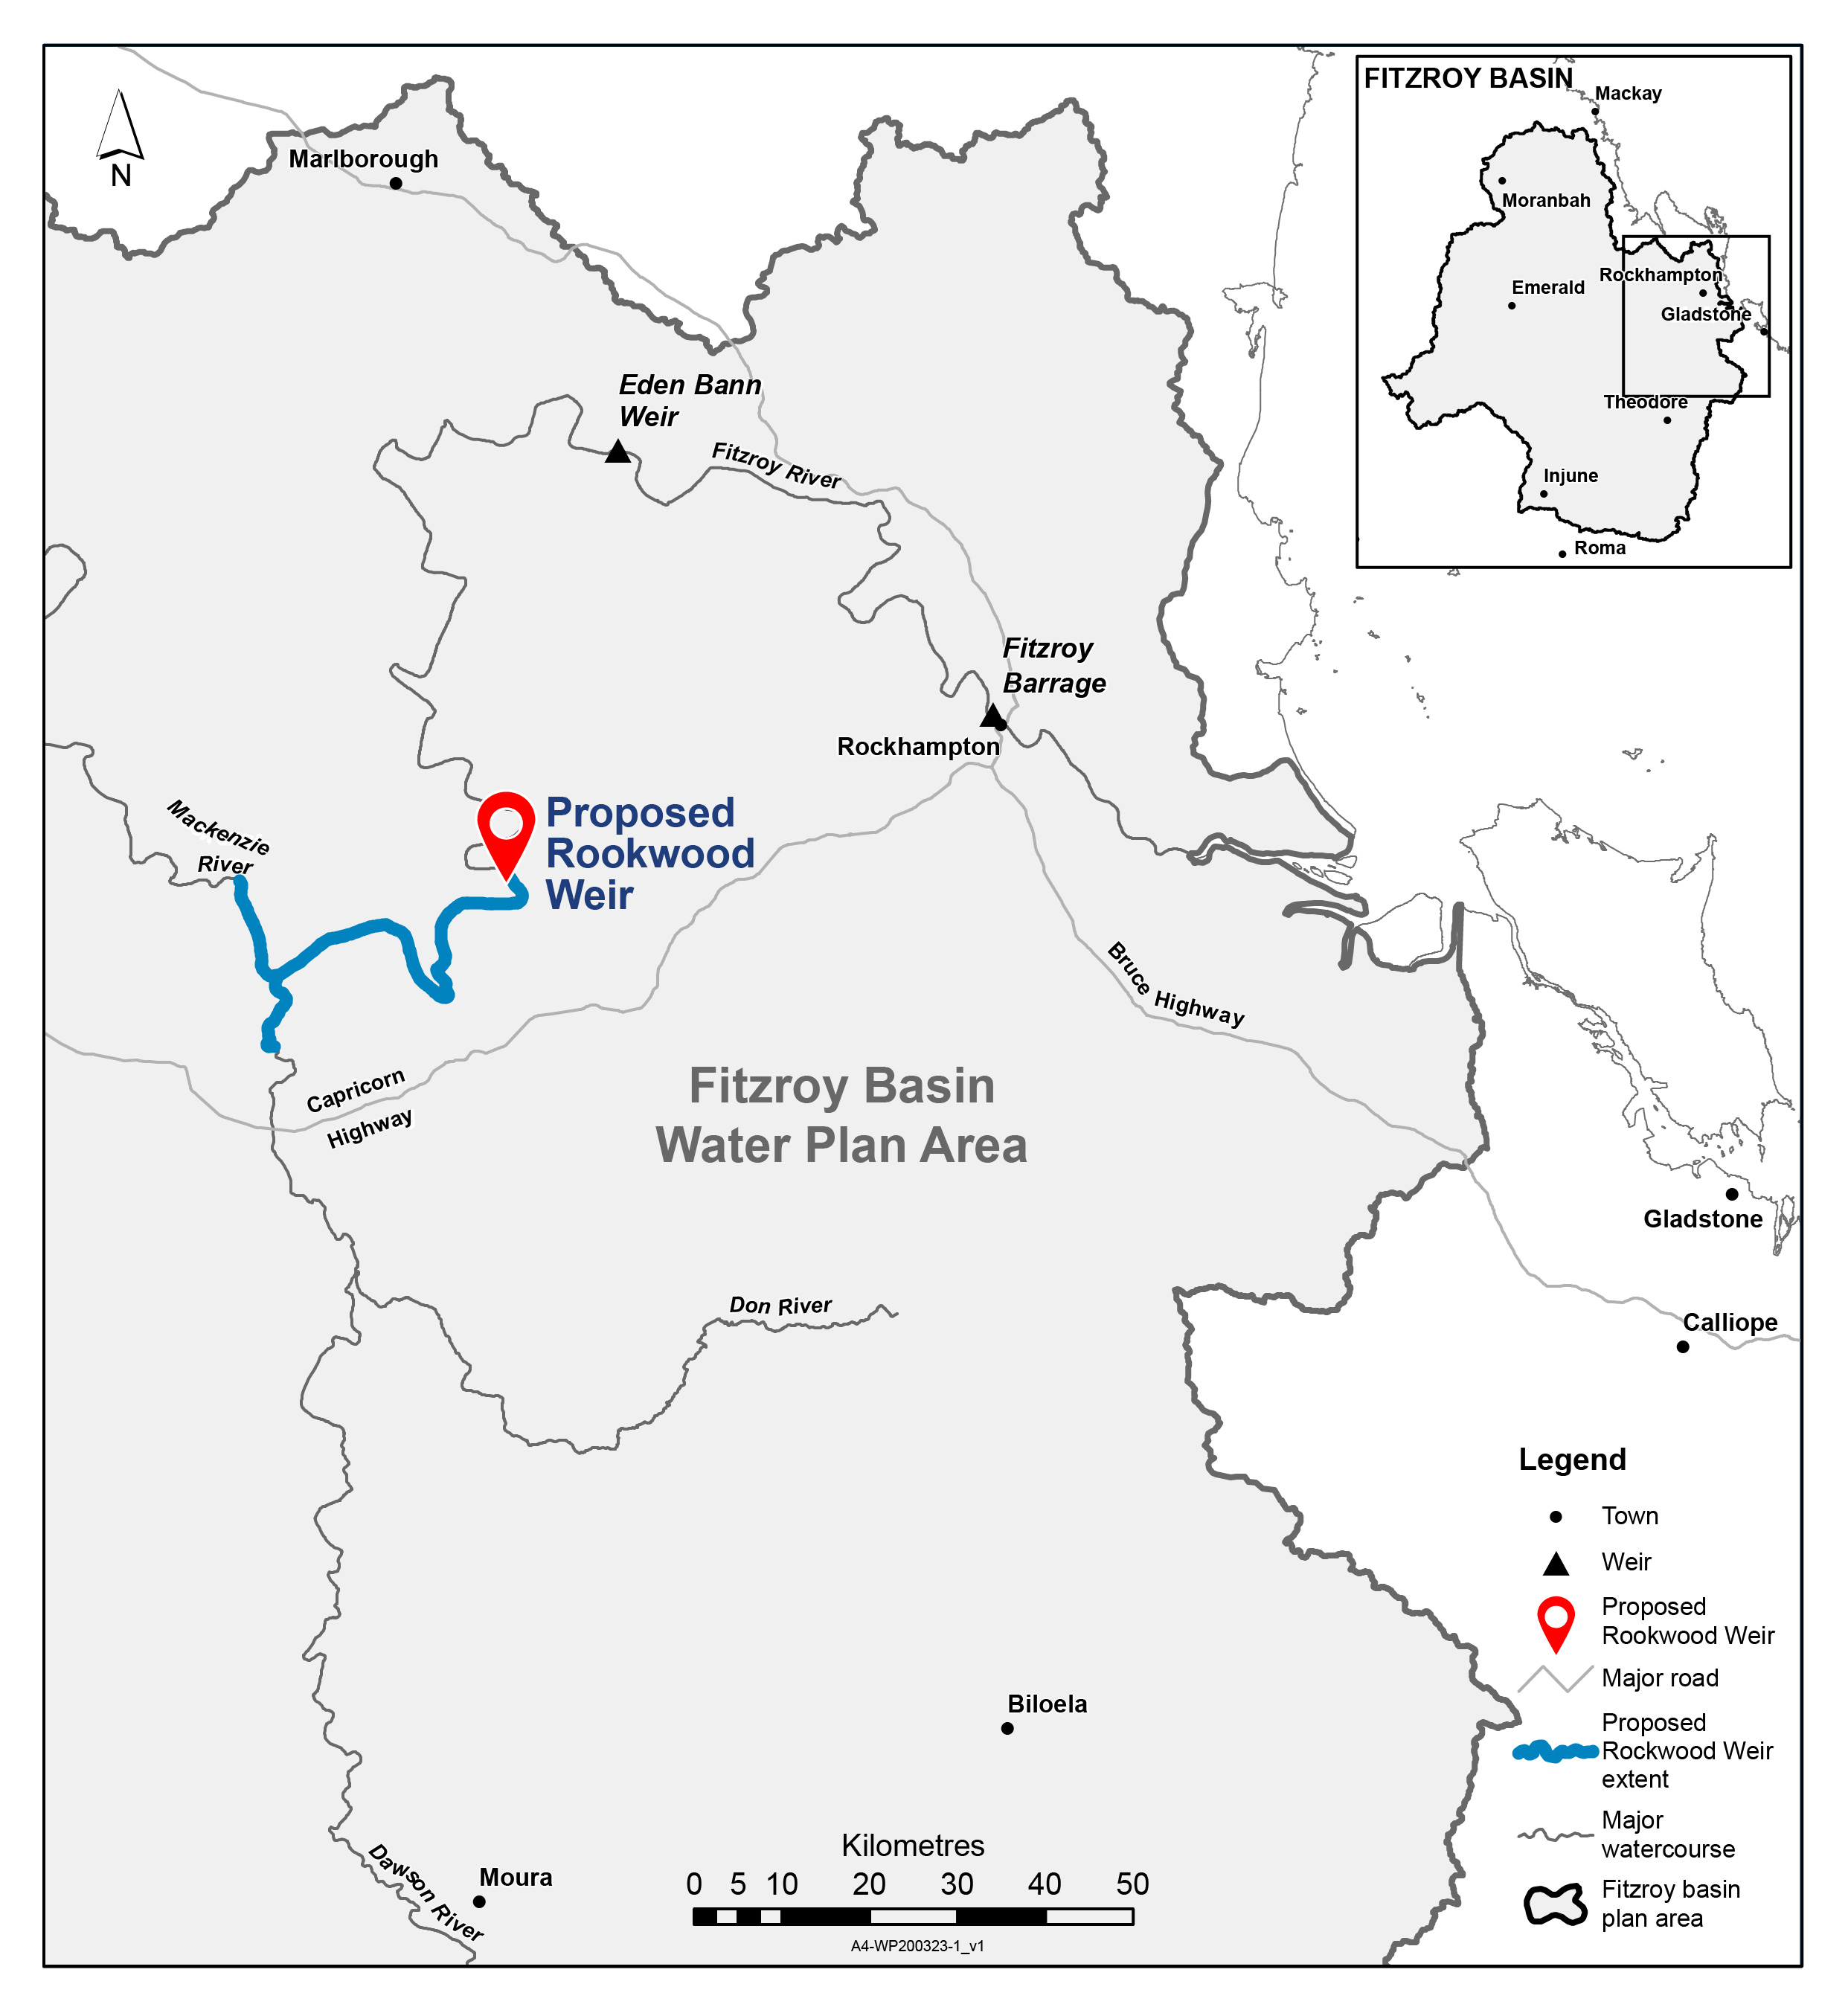 Map showing the proposed location of the Rookwood Weir in the context of the Fitzroy Basin area. Rookwood Weir will be constructed on the Fitzroy River, Central Queensland, approximately 66km south-west of Rockhampton.